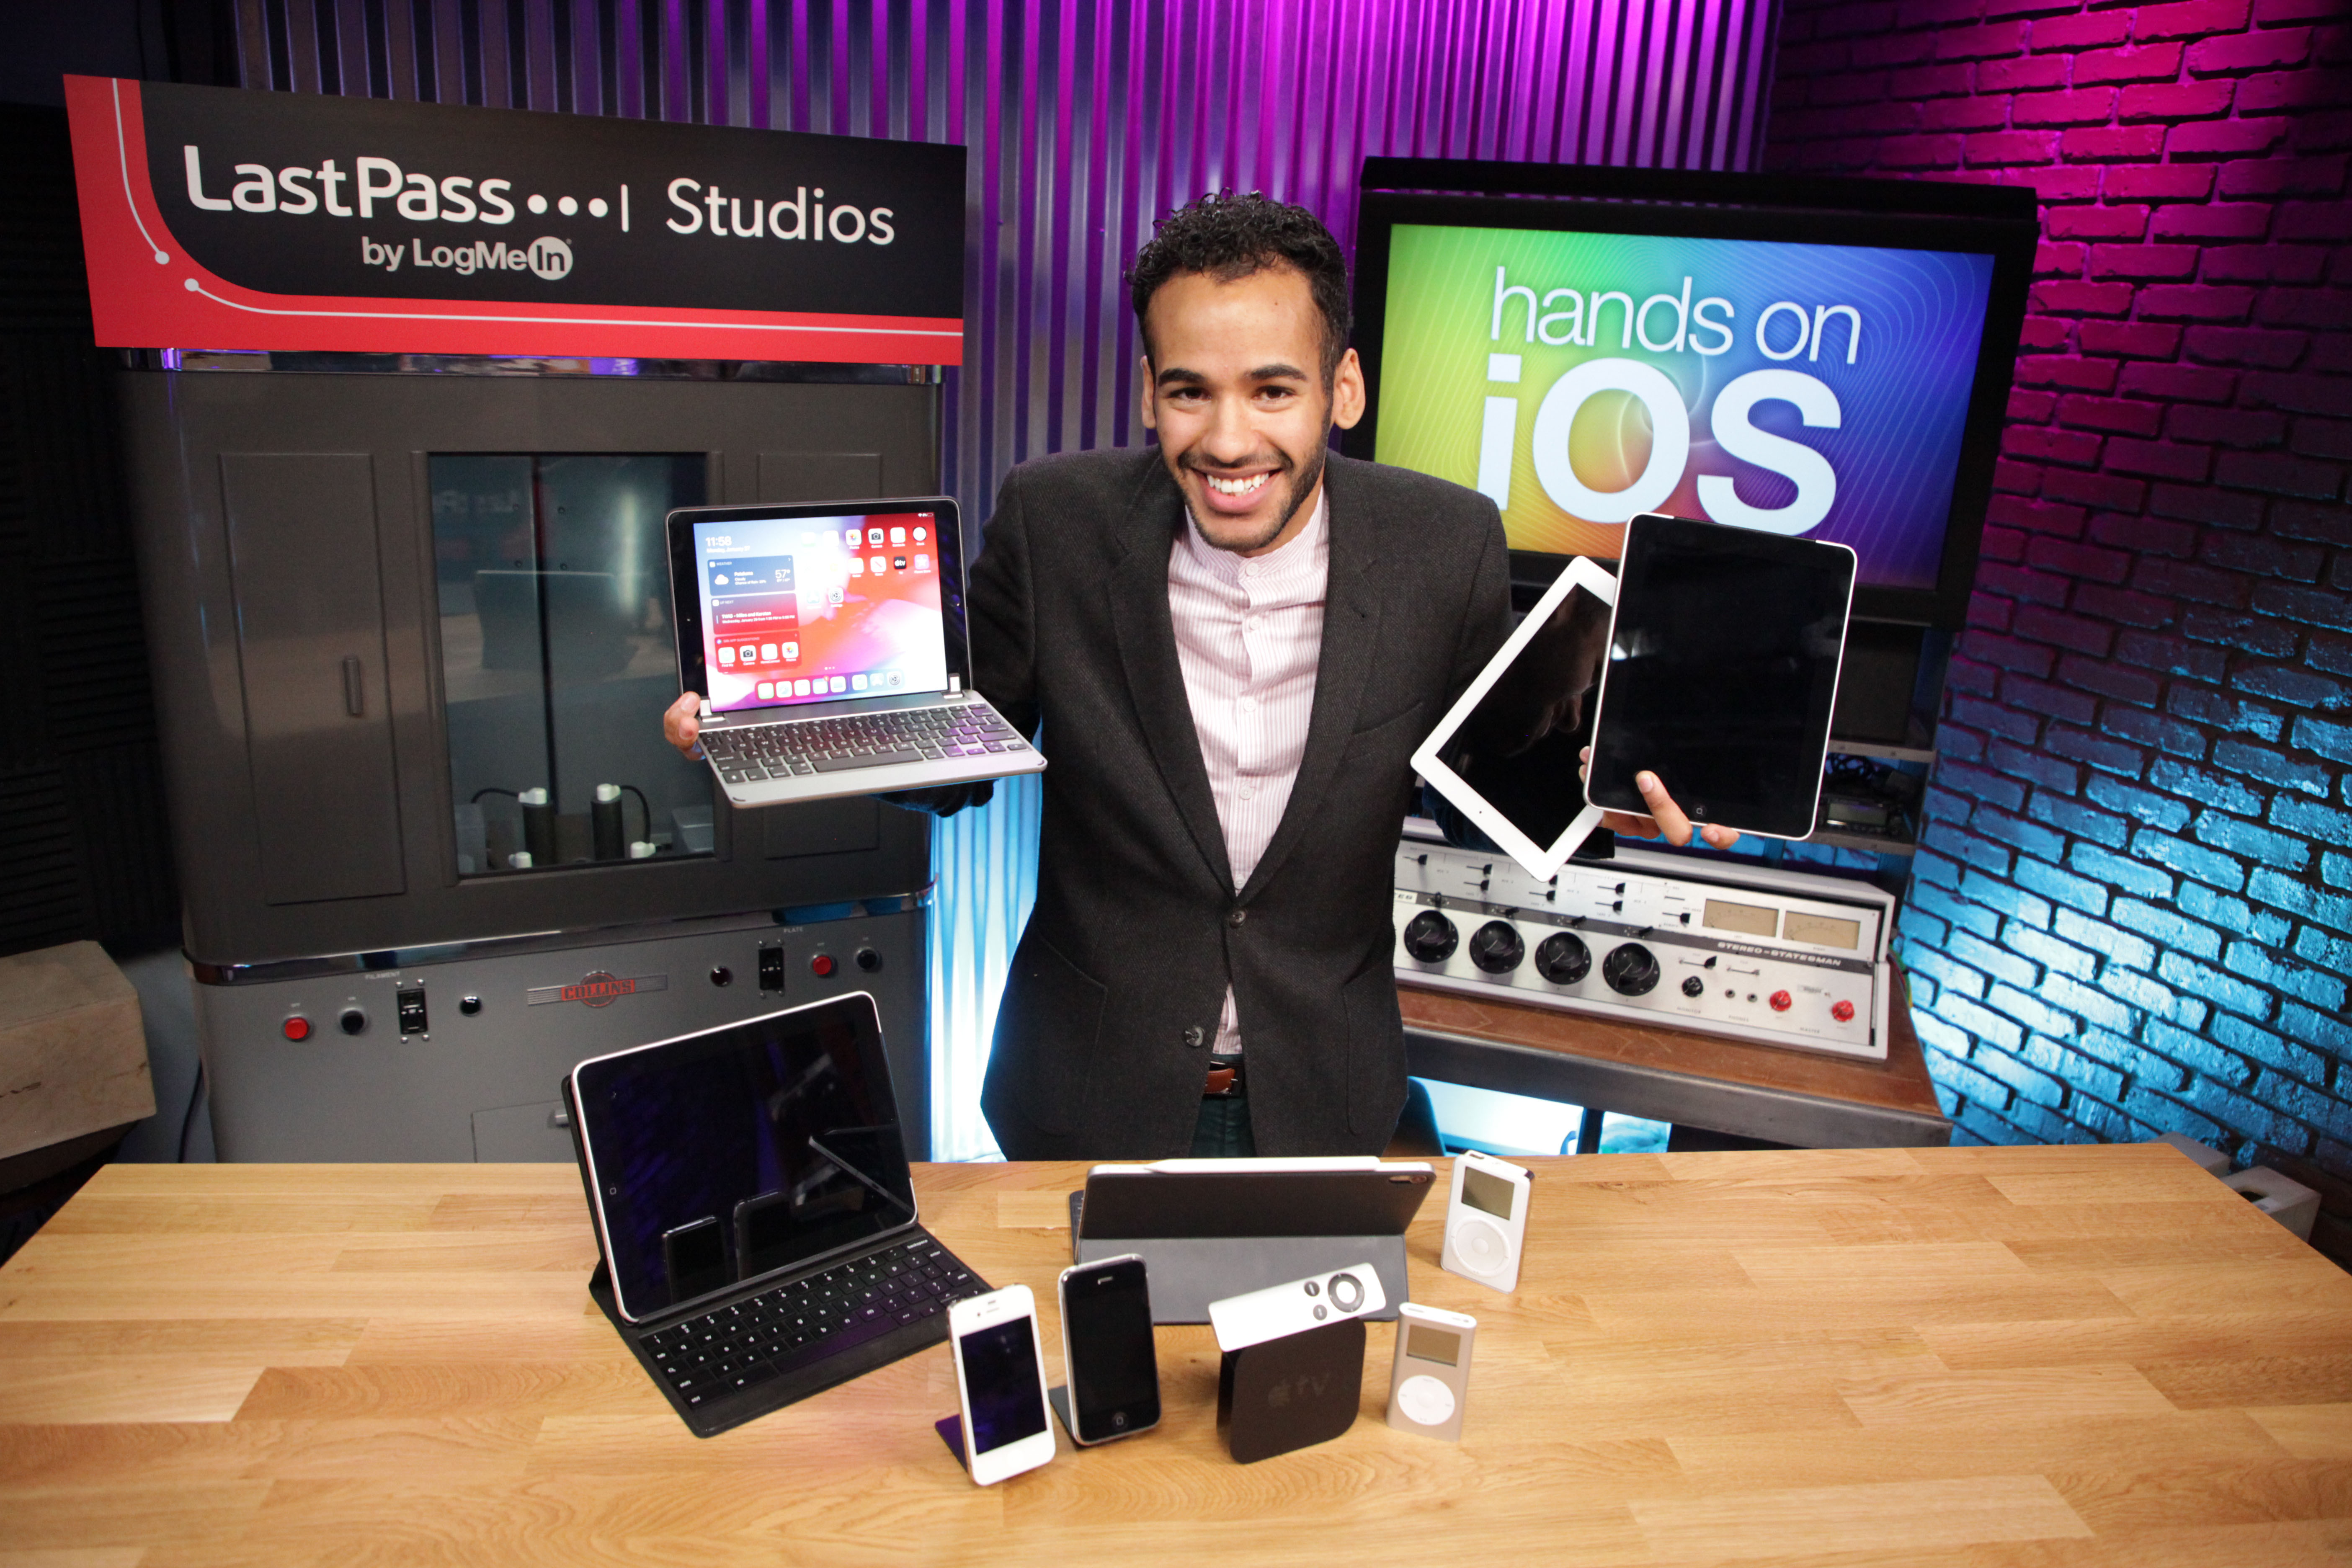 Hands-On iOS host Mikah Sargent